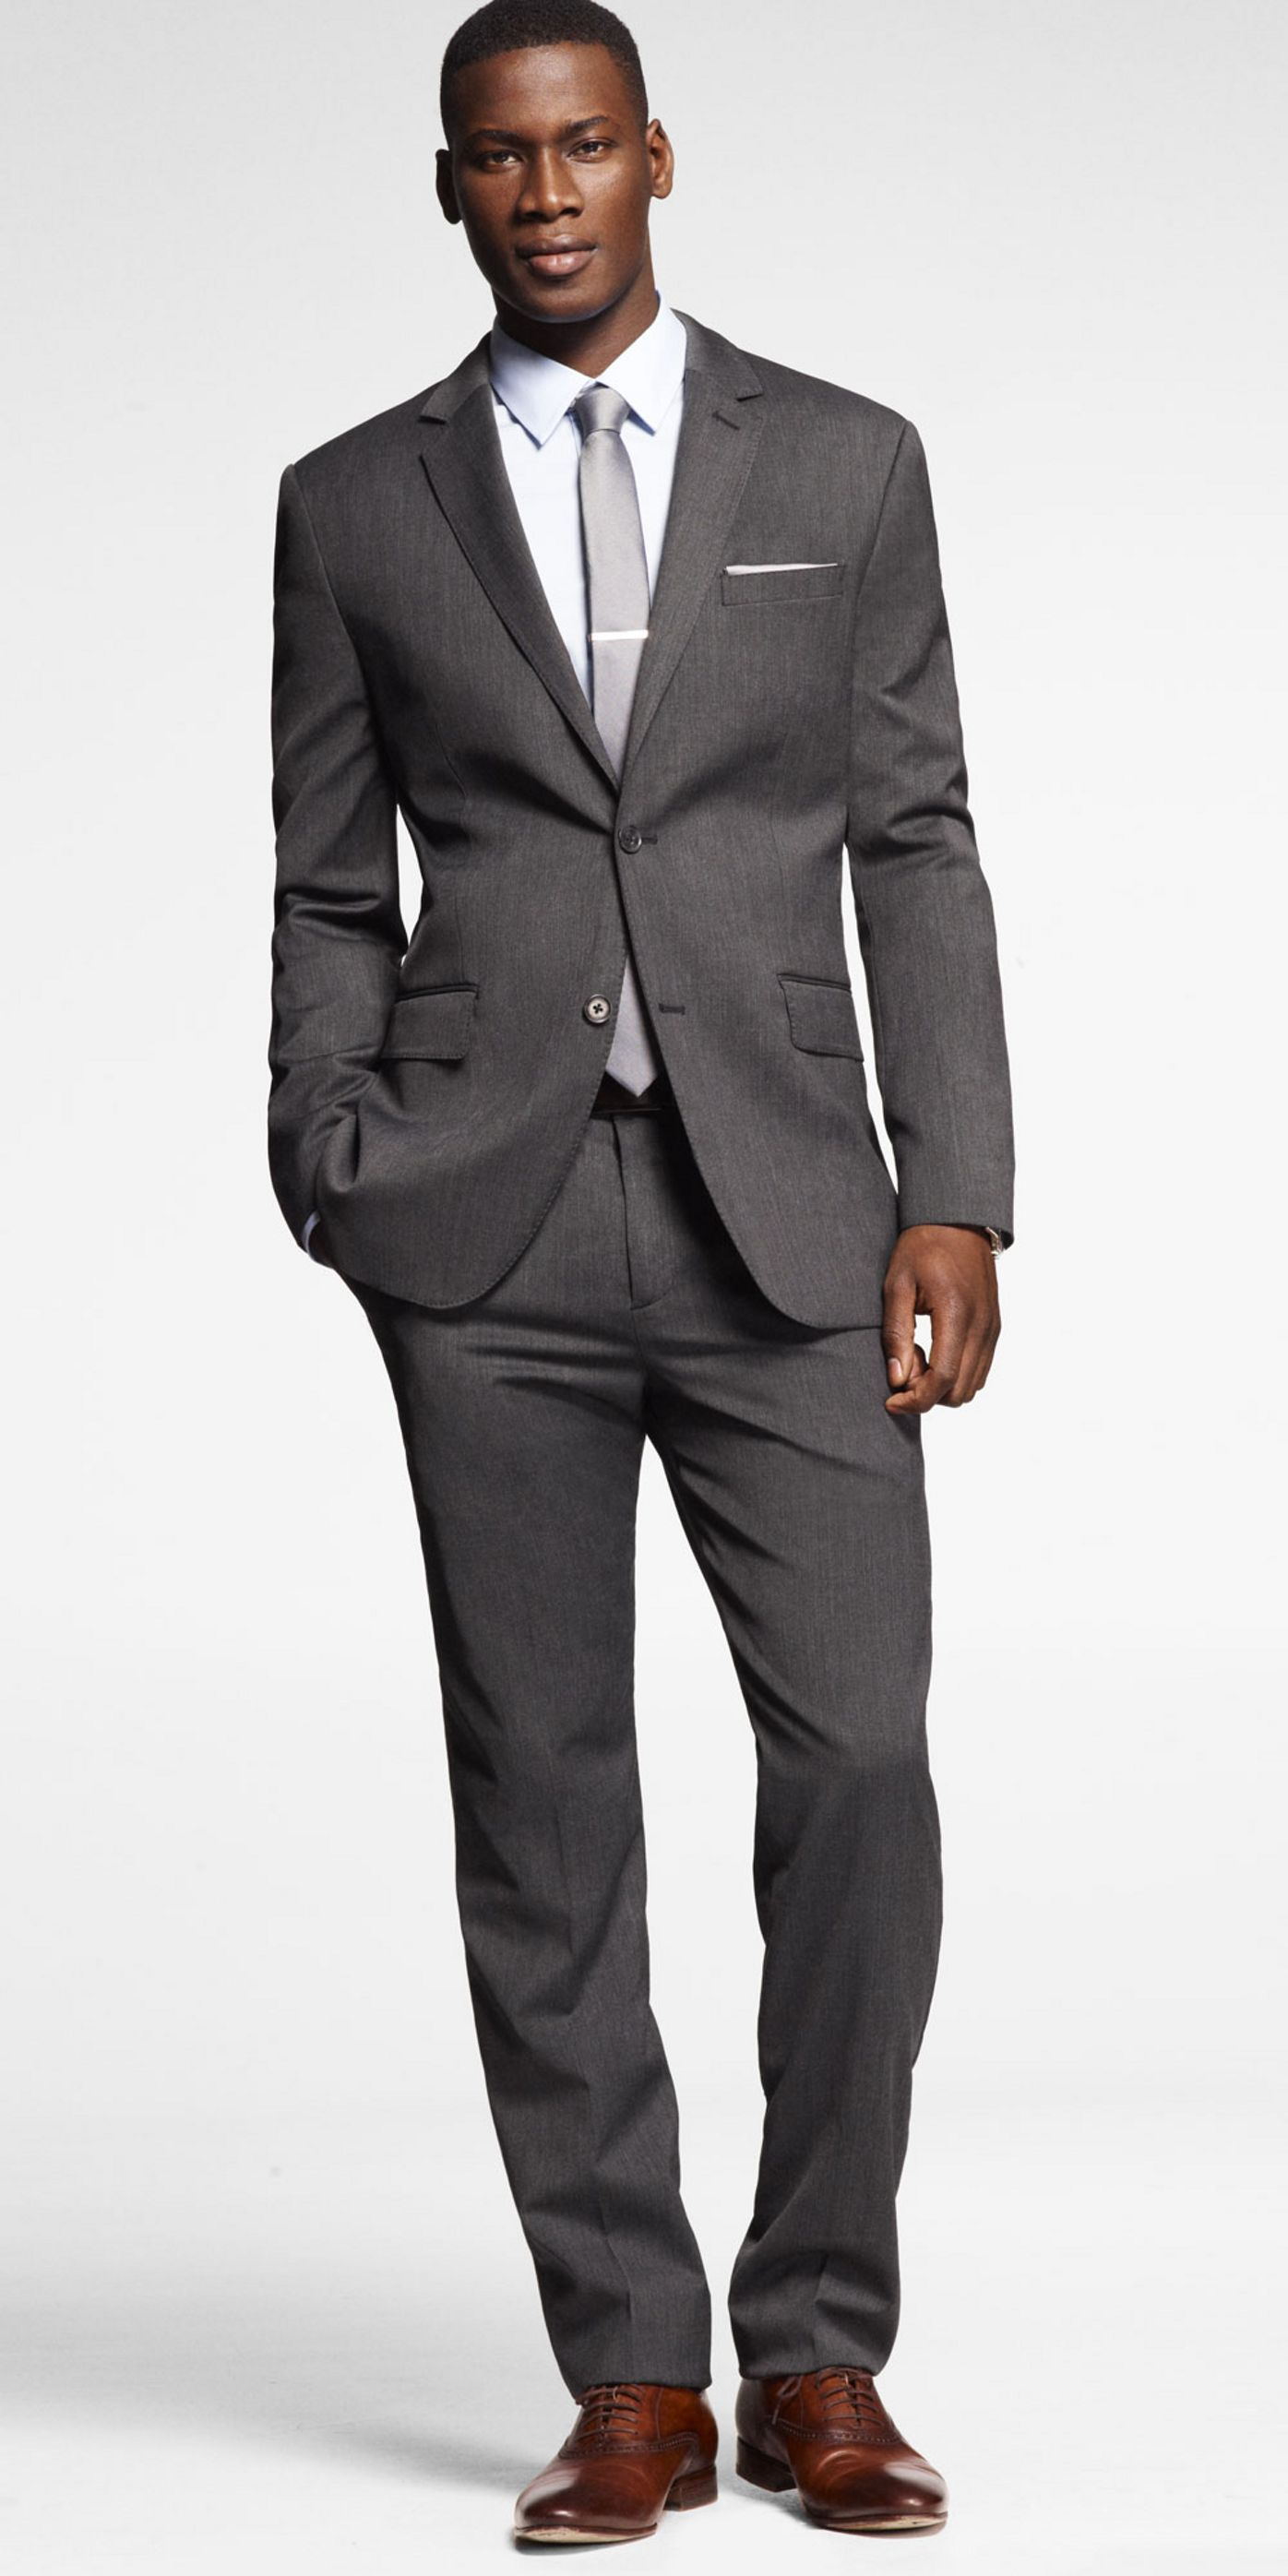 Express menus stretch wool producer suit in gray business